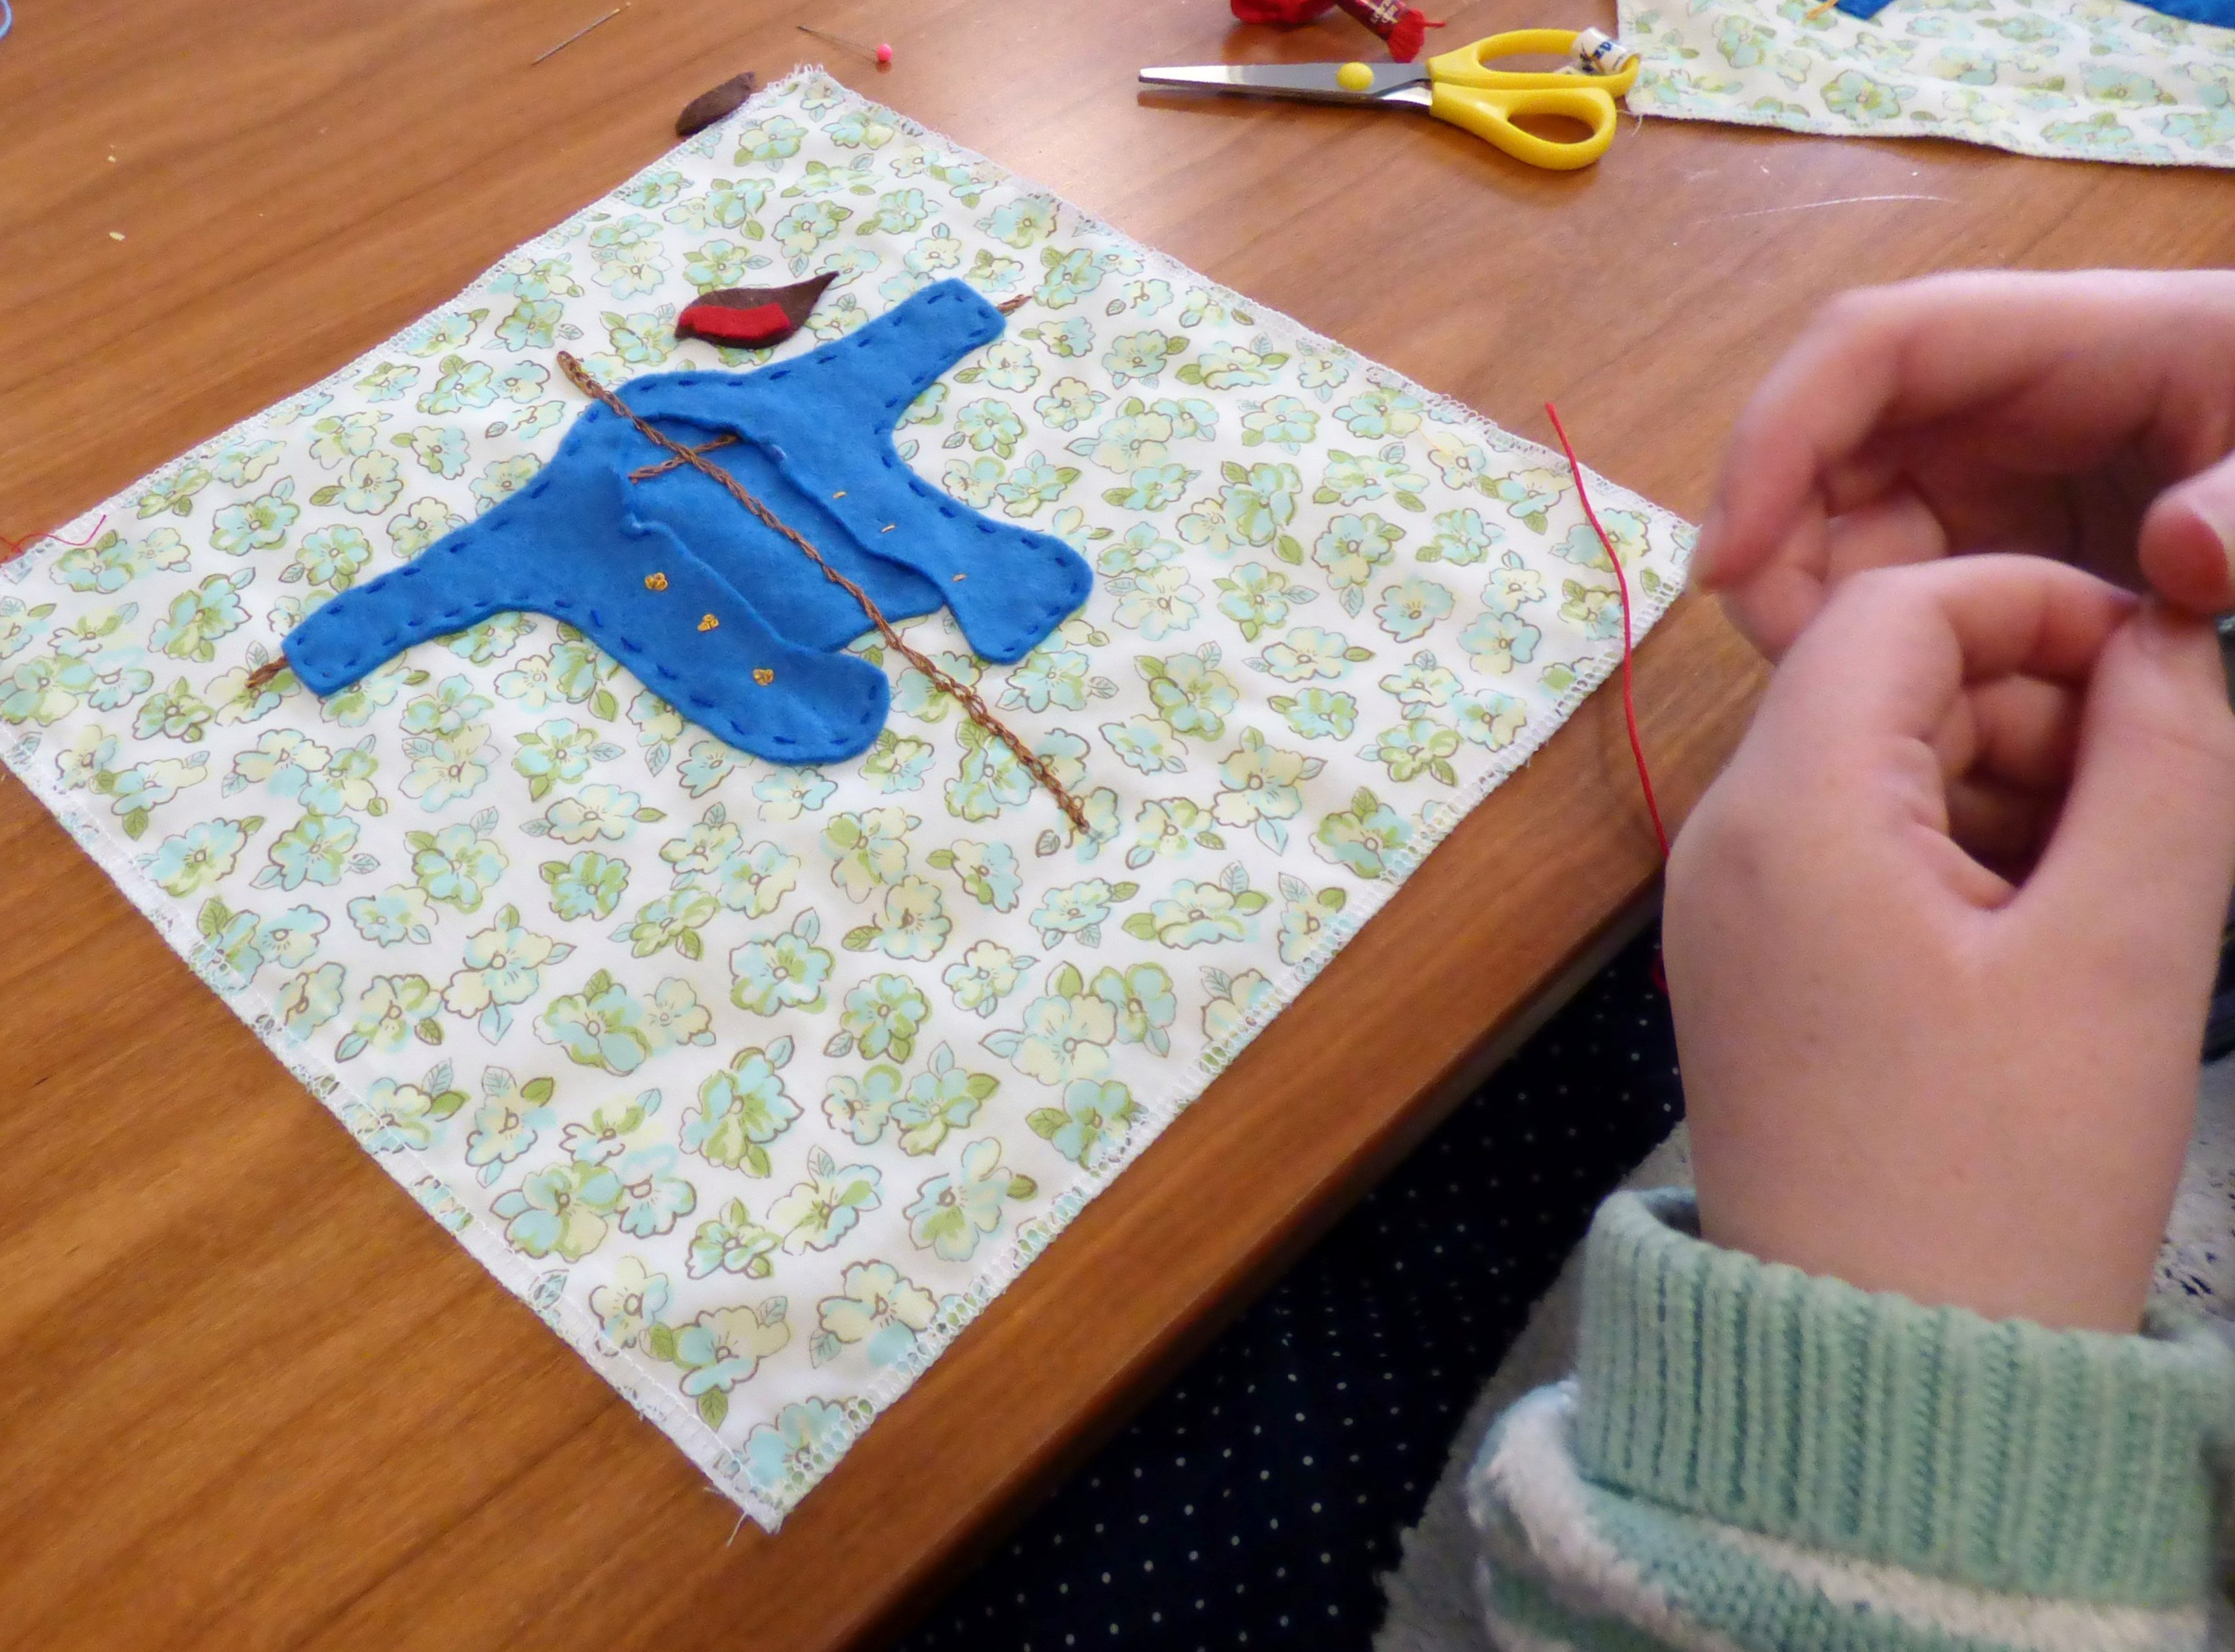 Peter Rabbit's jacket and YE Group meeting September 2016